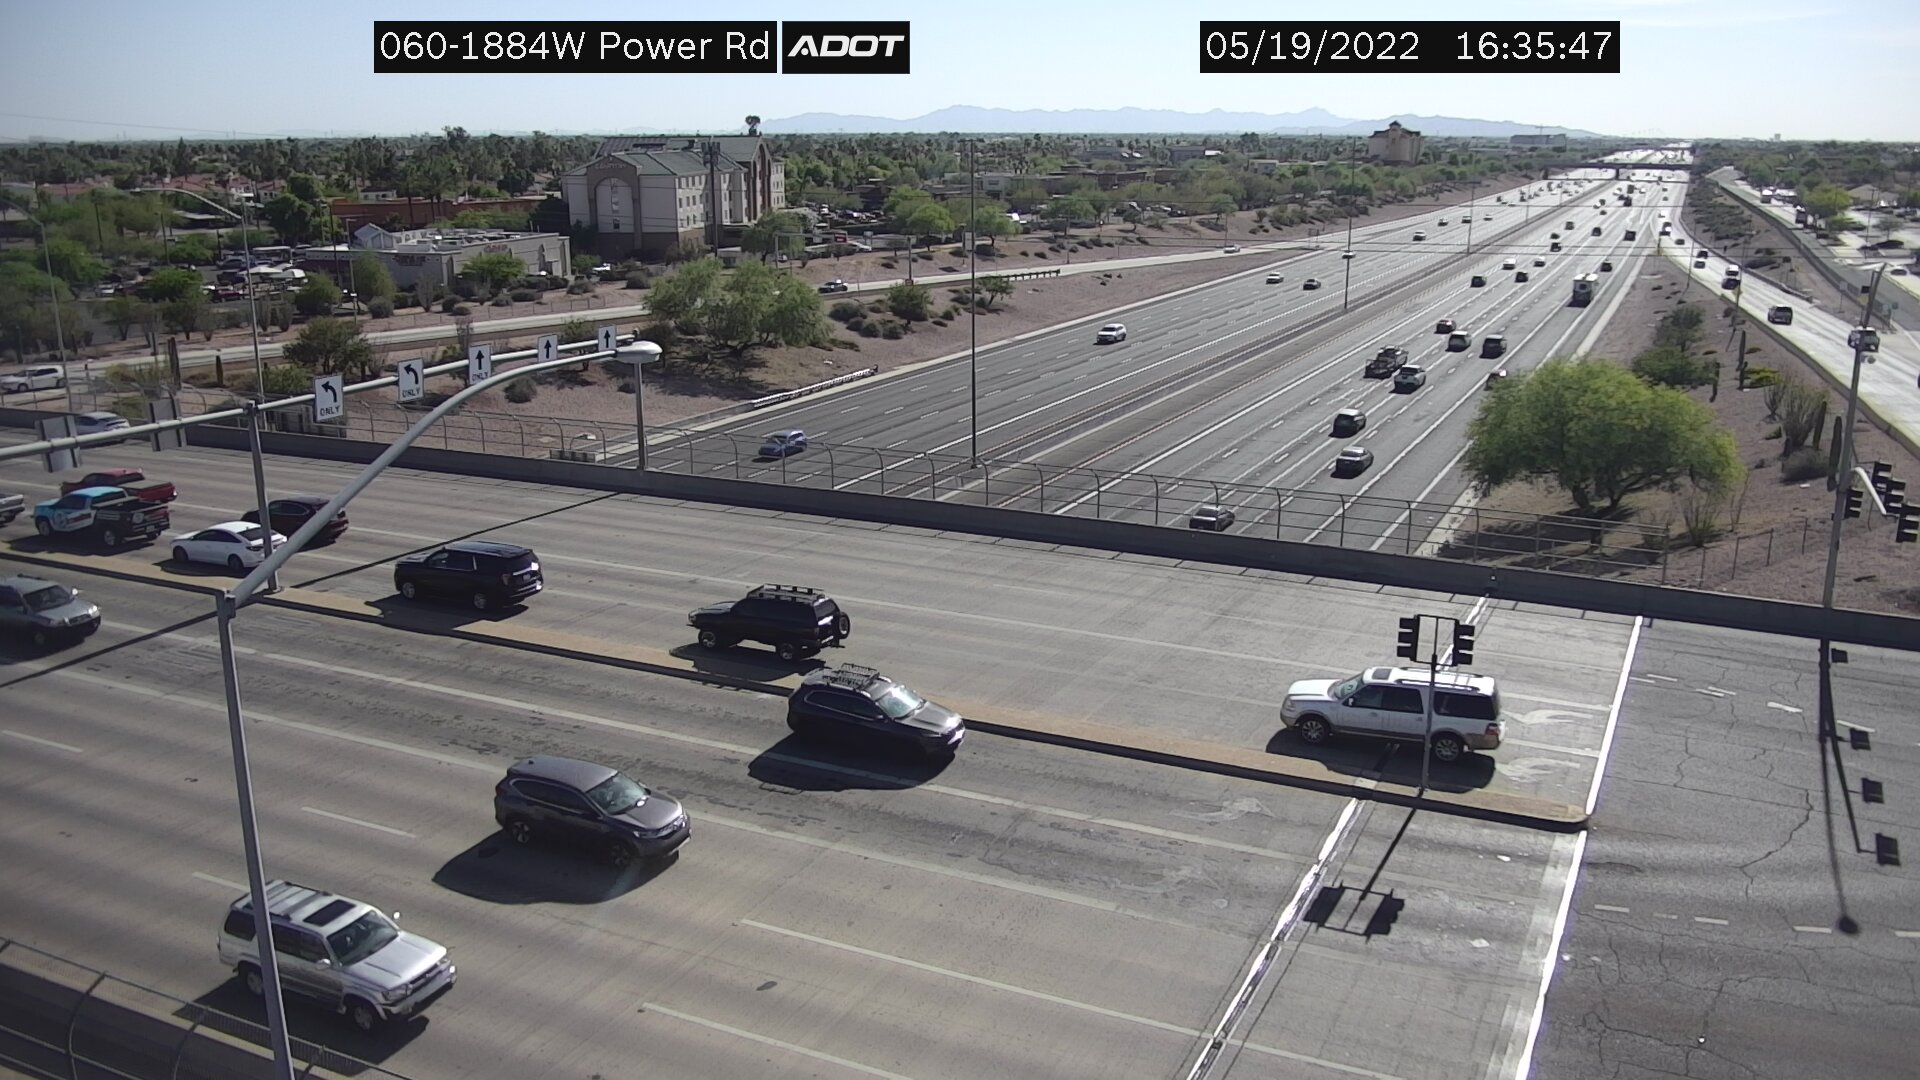 Power WB (US60) (190) - Phoenix and Arizona